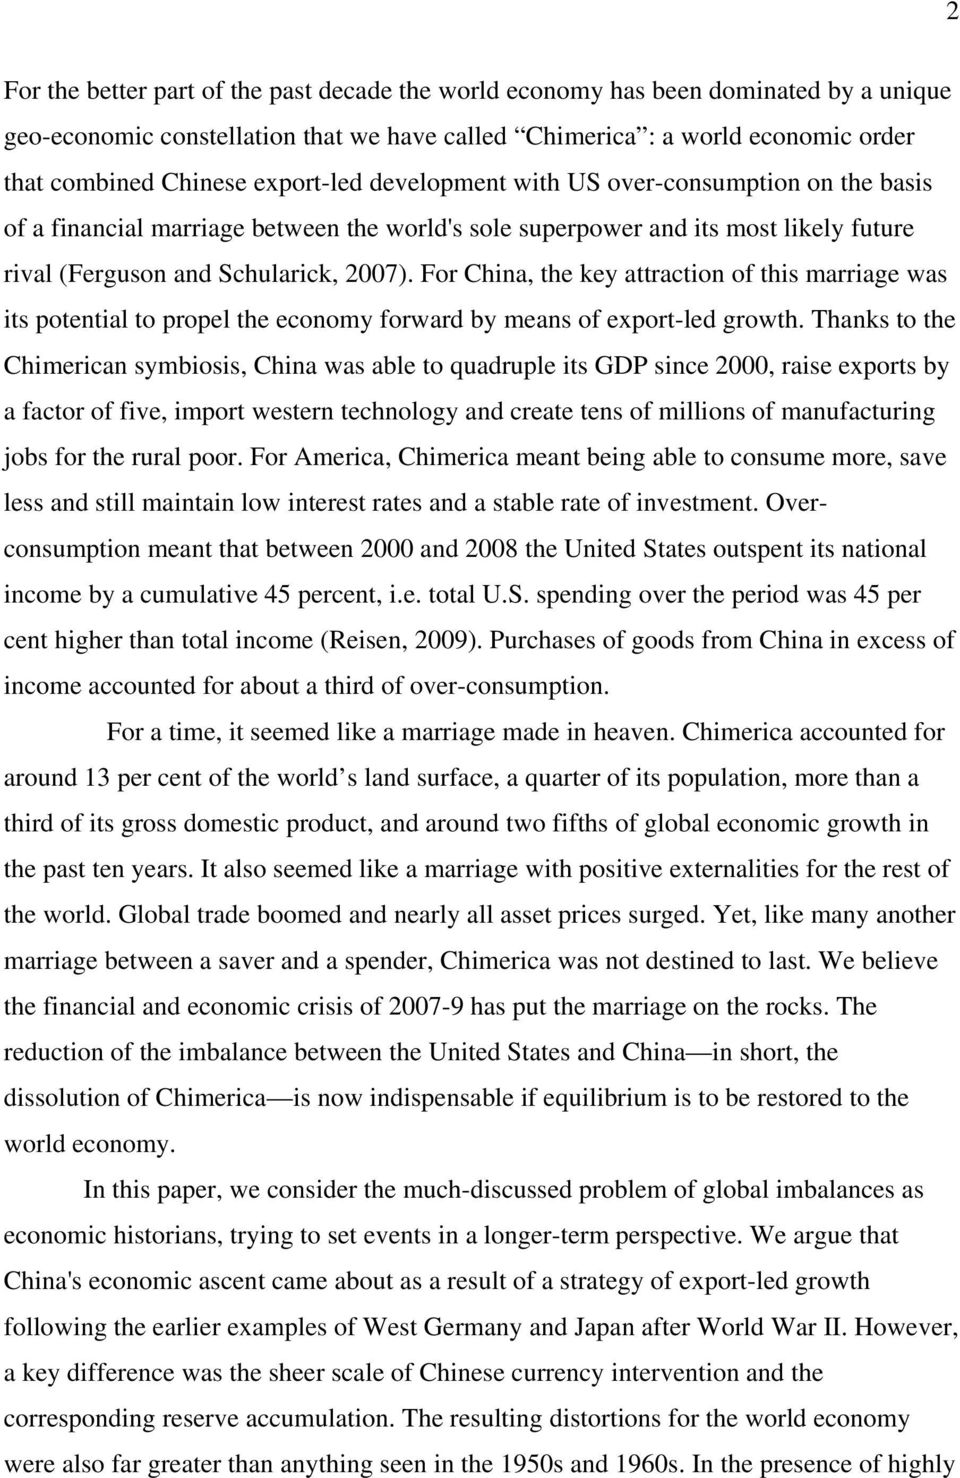 For China, the key attraction of this marriage was its potential to propel the economy forward by means of export-led growth.